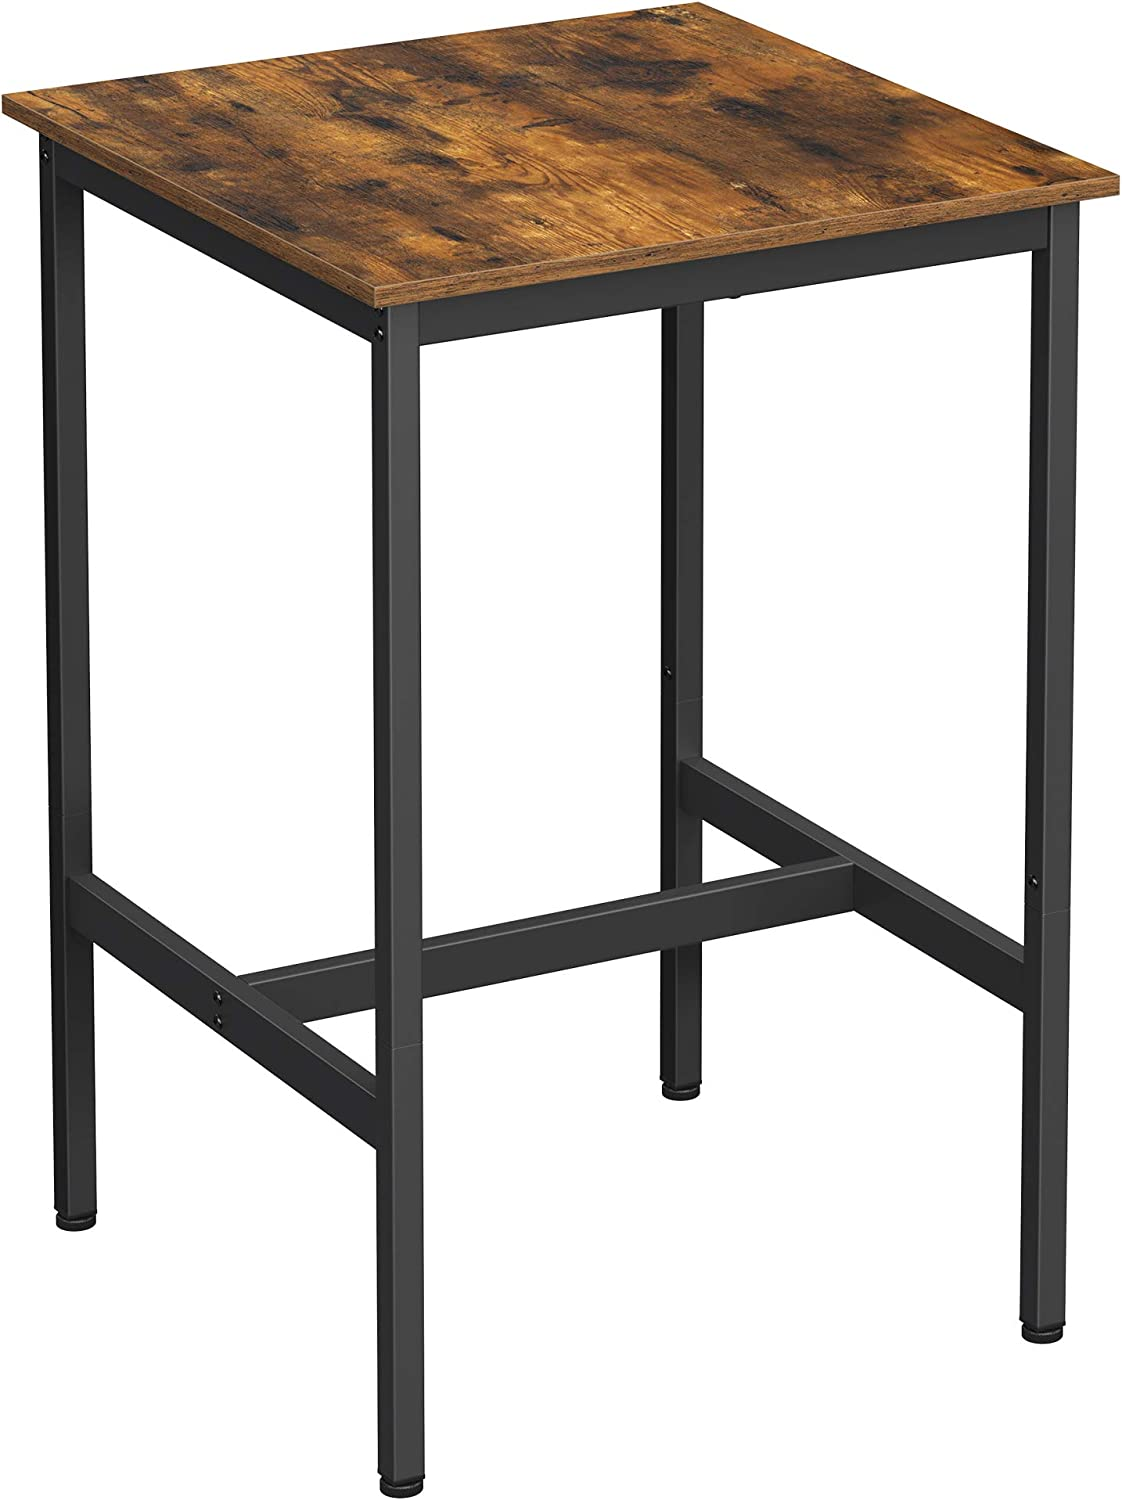 VASAGLE LBT9X Bar Table, High Dining Table, Lectern with Sturdy Steel  Frame, 9 x 9 x 9 cm, Easy Assembly, Kitchen, Industrial Style, Vintage  ...